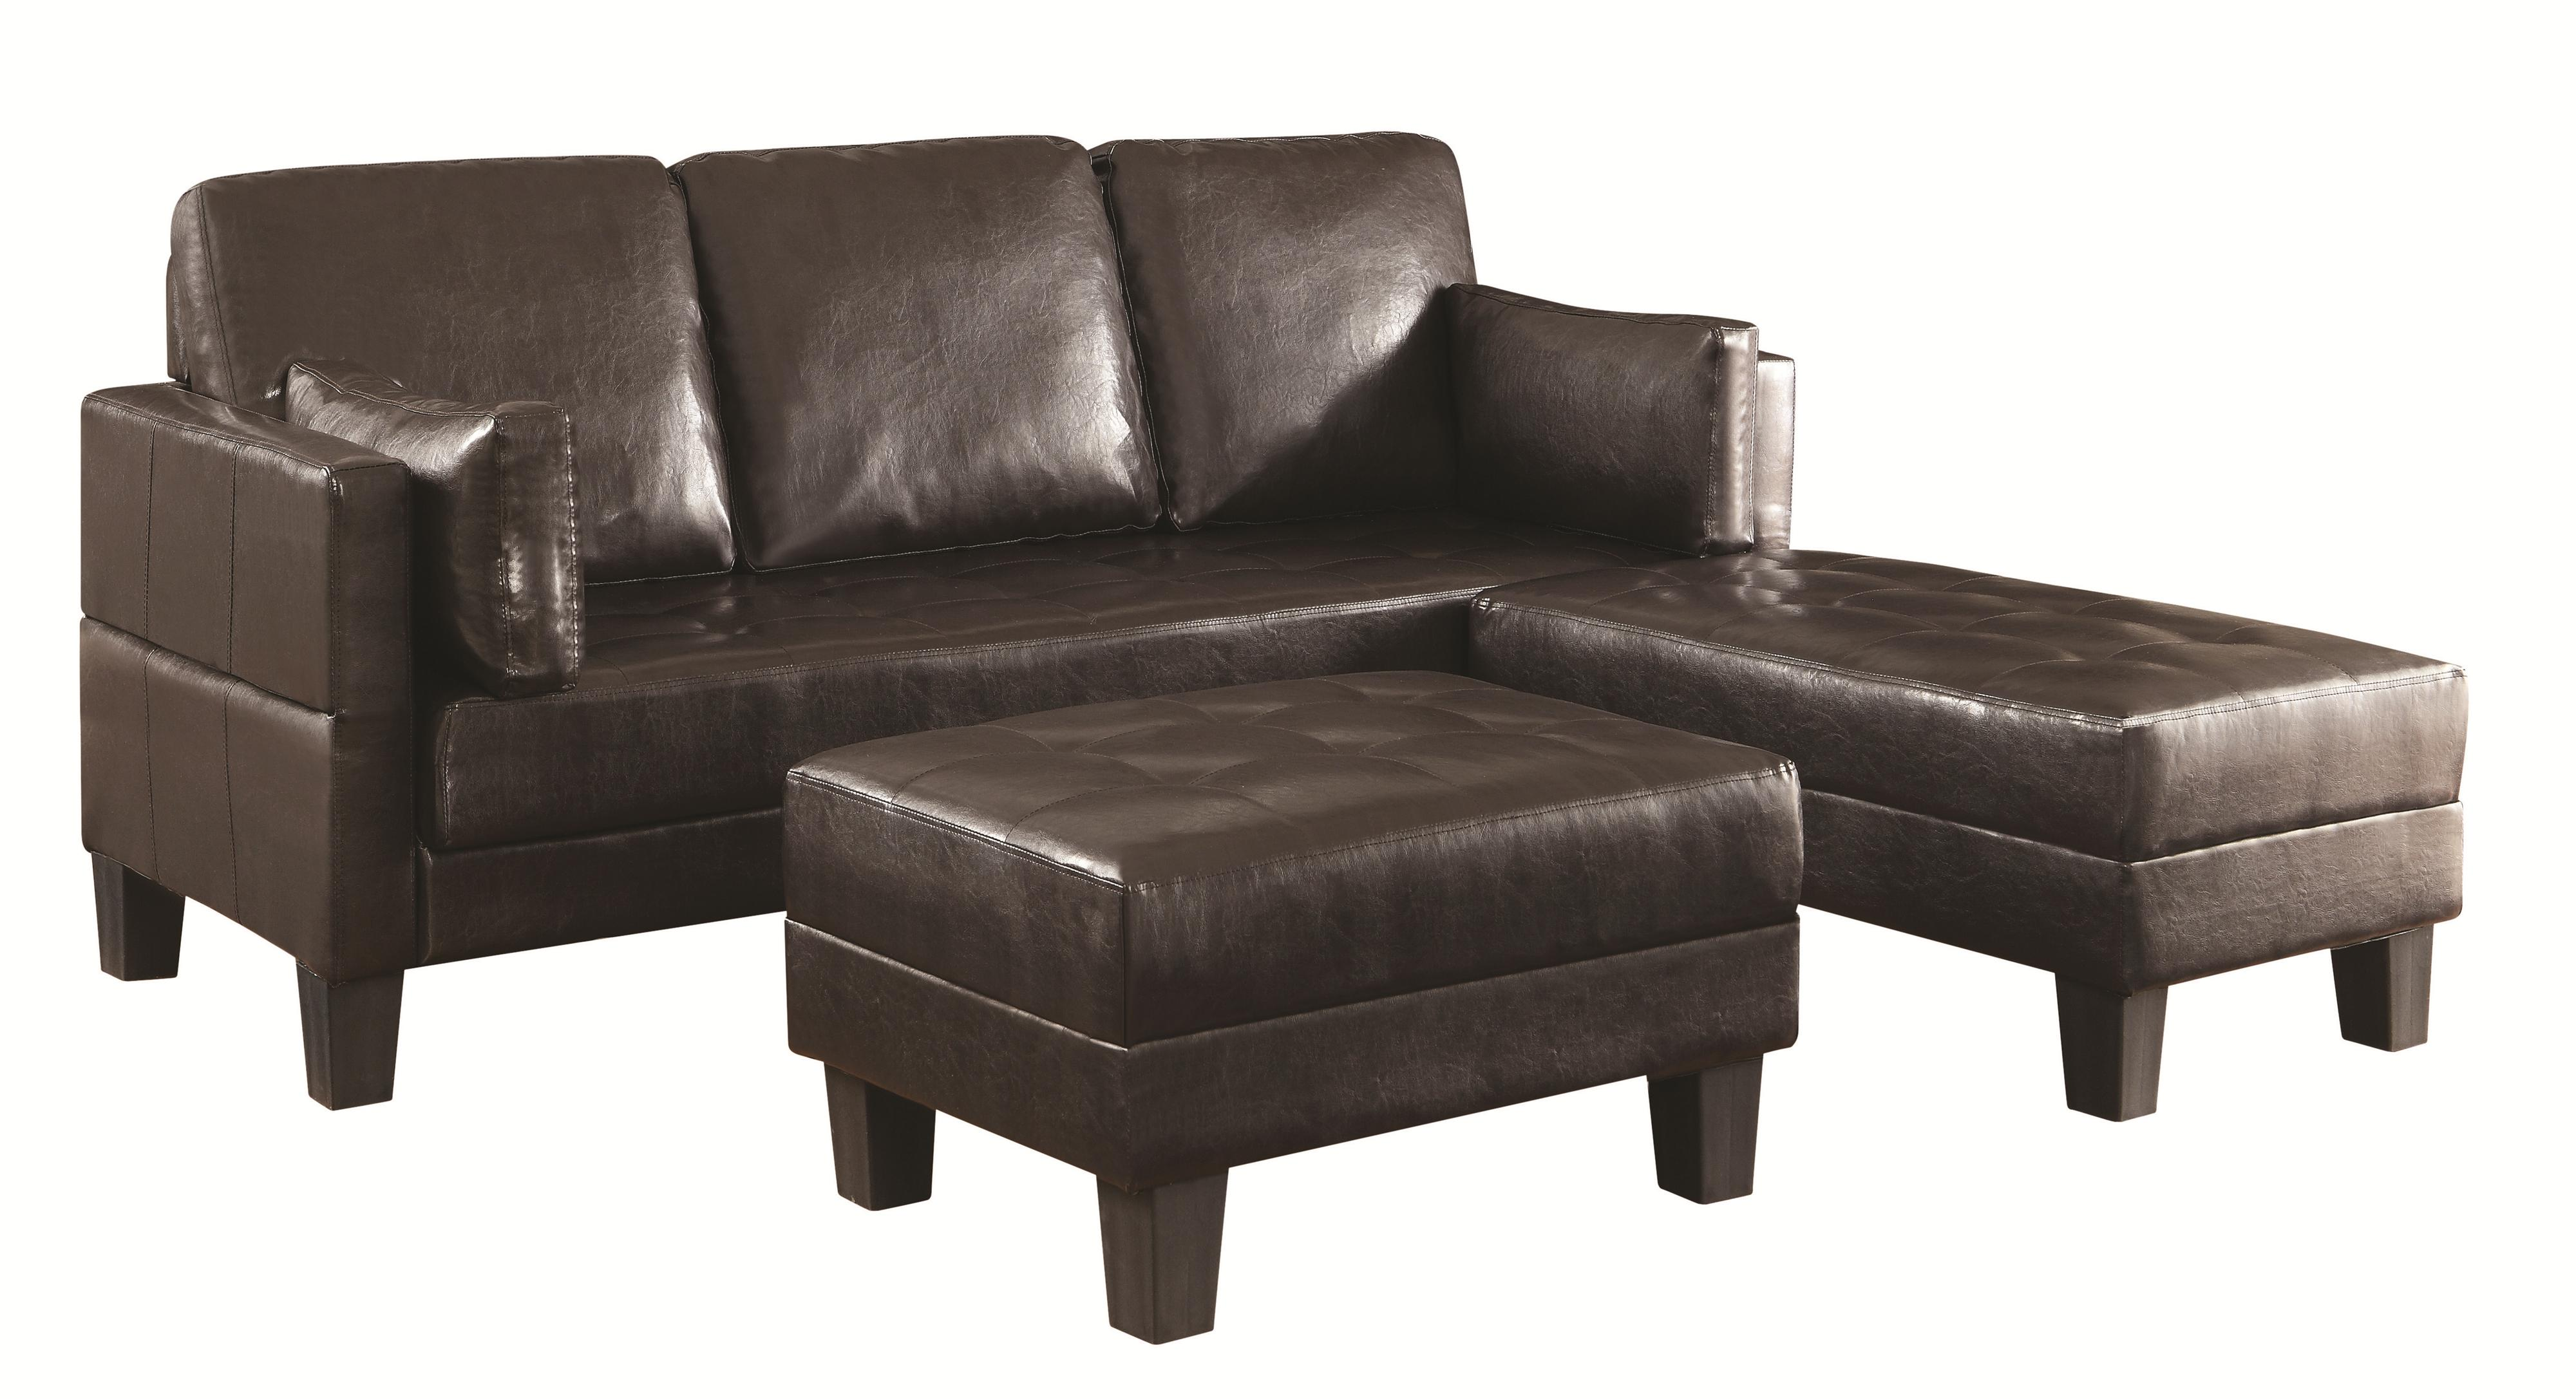 Contemporary sofa bed group with 2 ottomans by coaster for Sofa bed ottoman